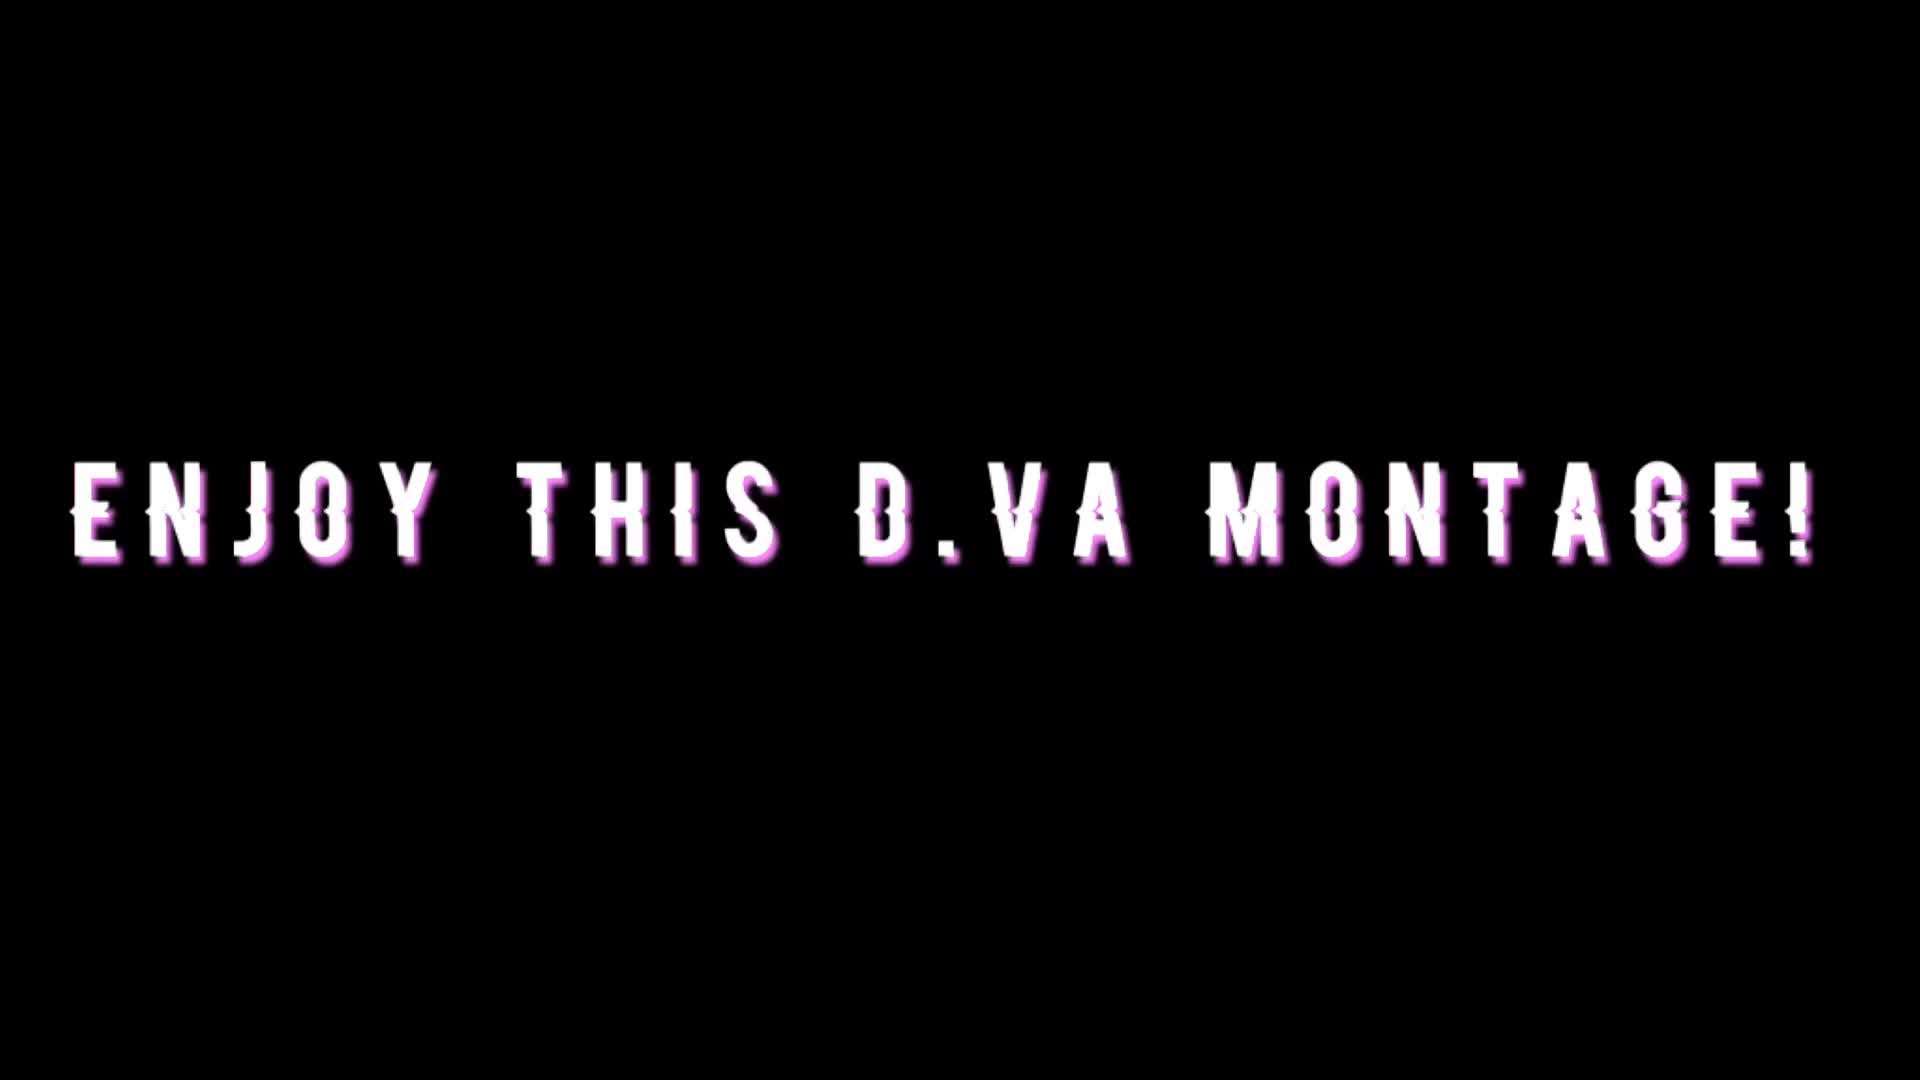 Call of Duty: General - D.va Montage! (Overwatch) video cover image 1